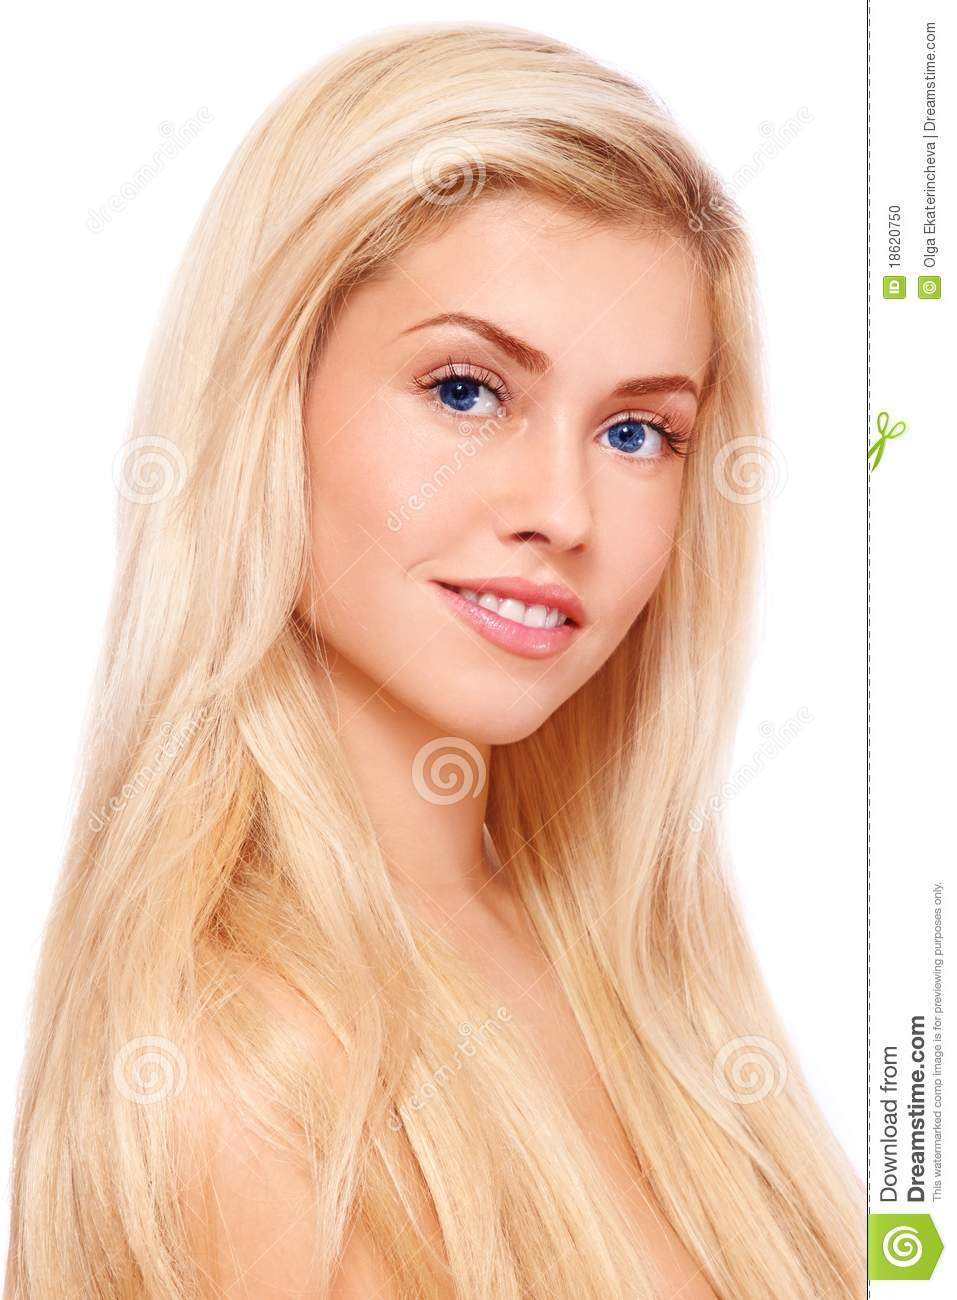 Blond Hair Stock Photo Image Of Lovely Care Beautiful 18620750